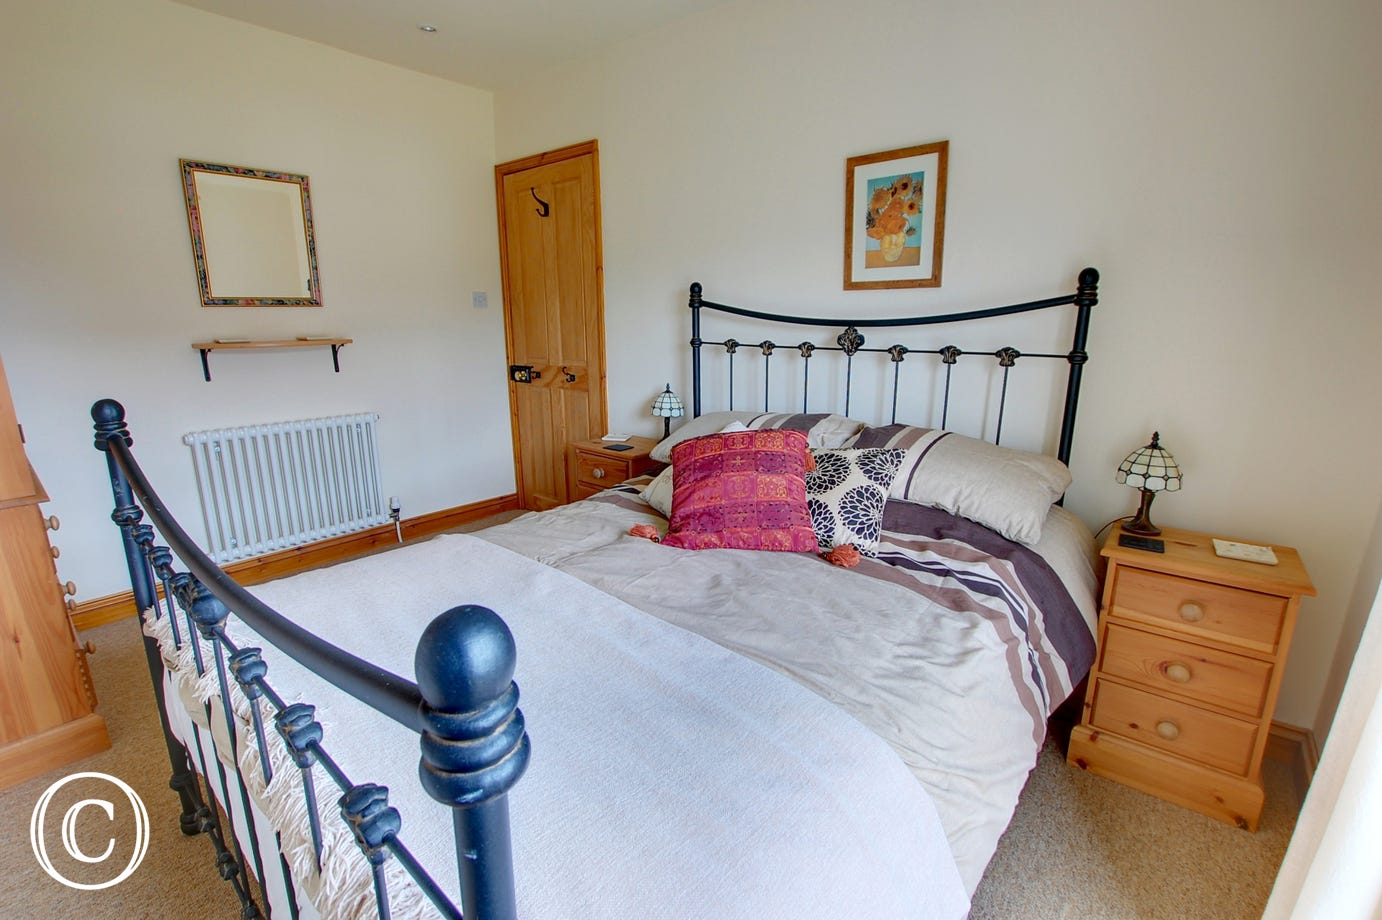 The double room has a double bed with an attractive iron bedstead, the room is light and airy and the window looks out over the front garden